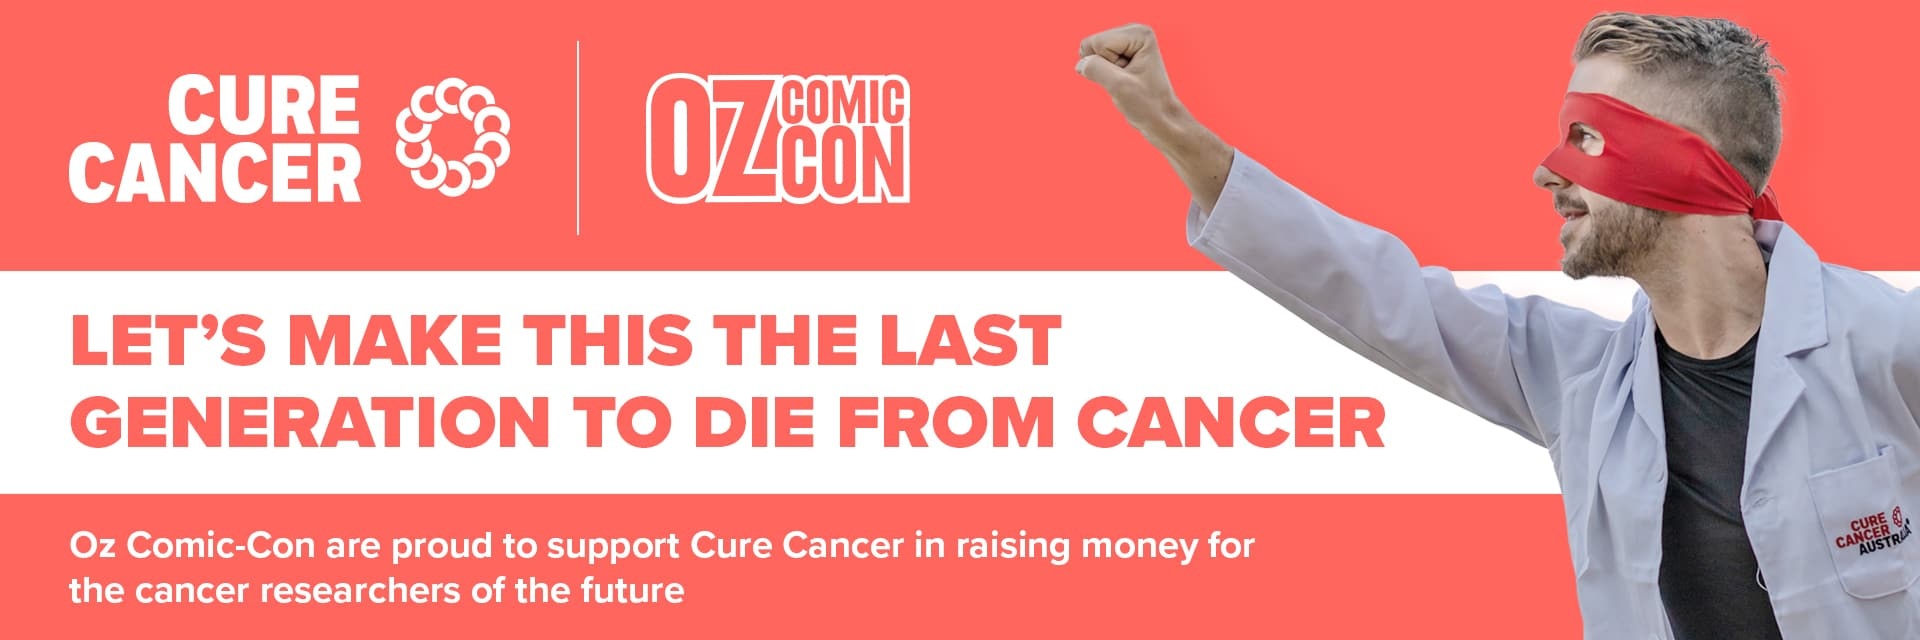 OCCM_Cure-Cancer_1920x640